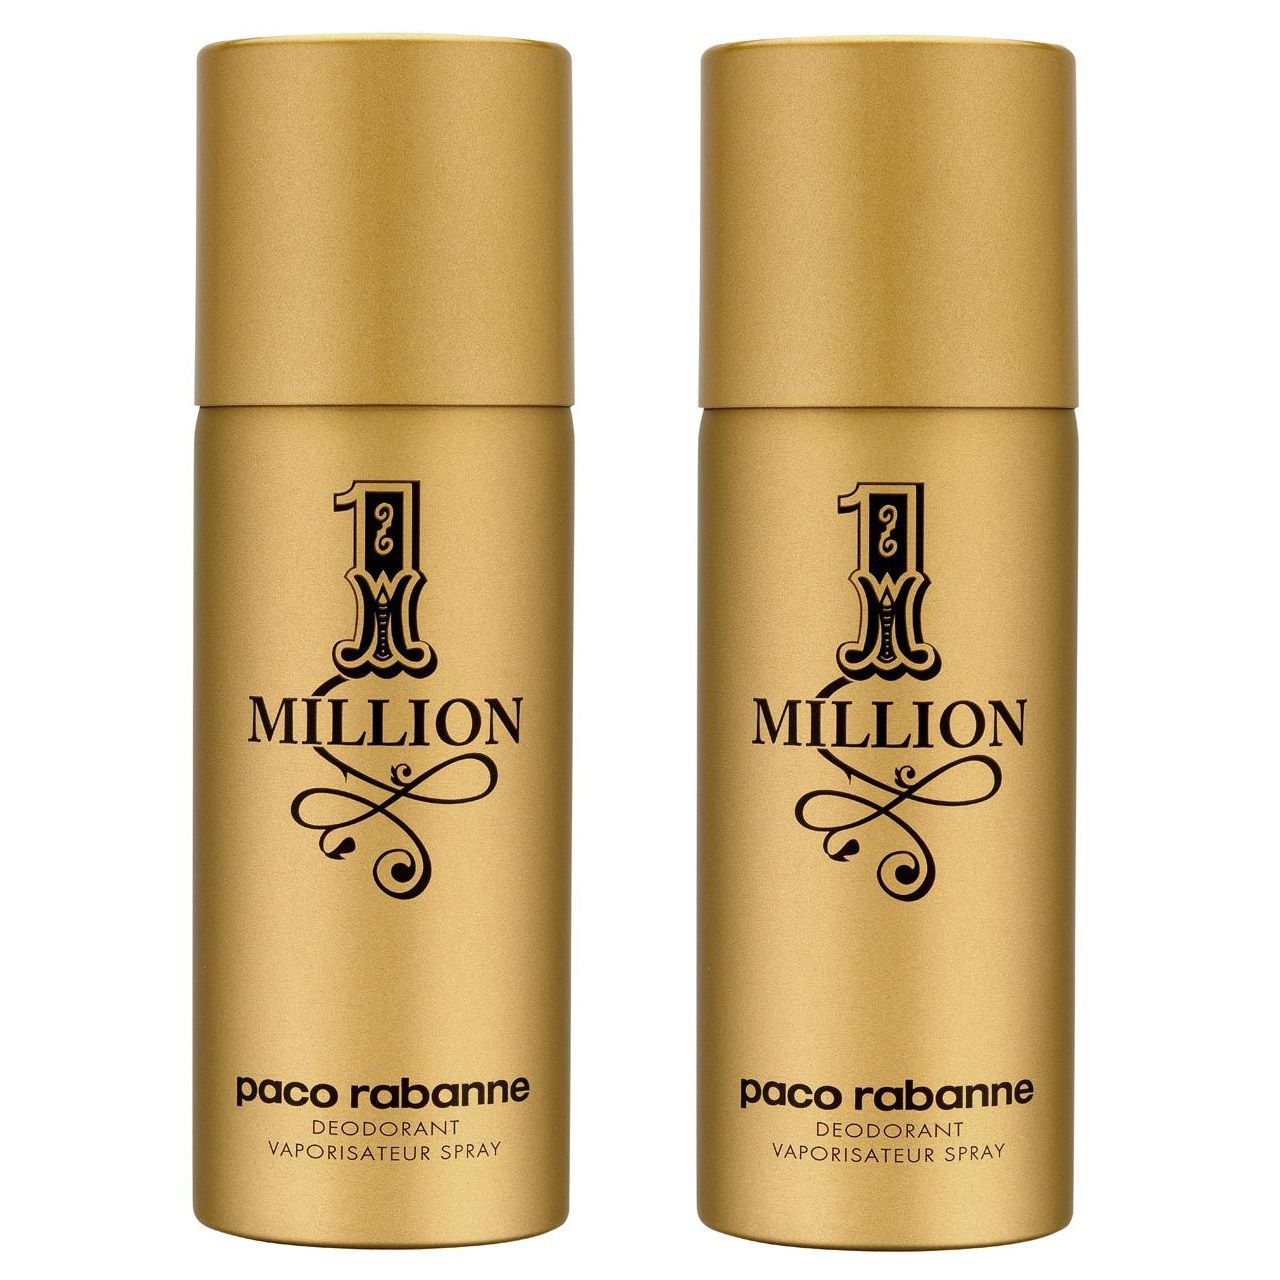 Paco Rabanne - 2x 1 Million Deodorant Spray 150 ml